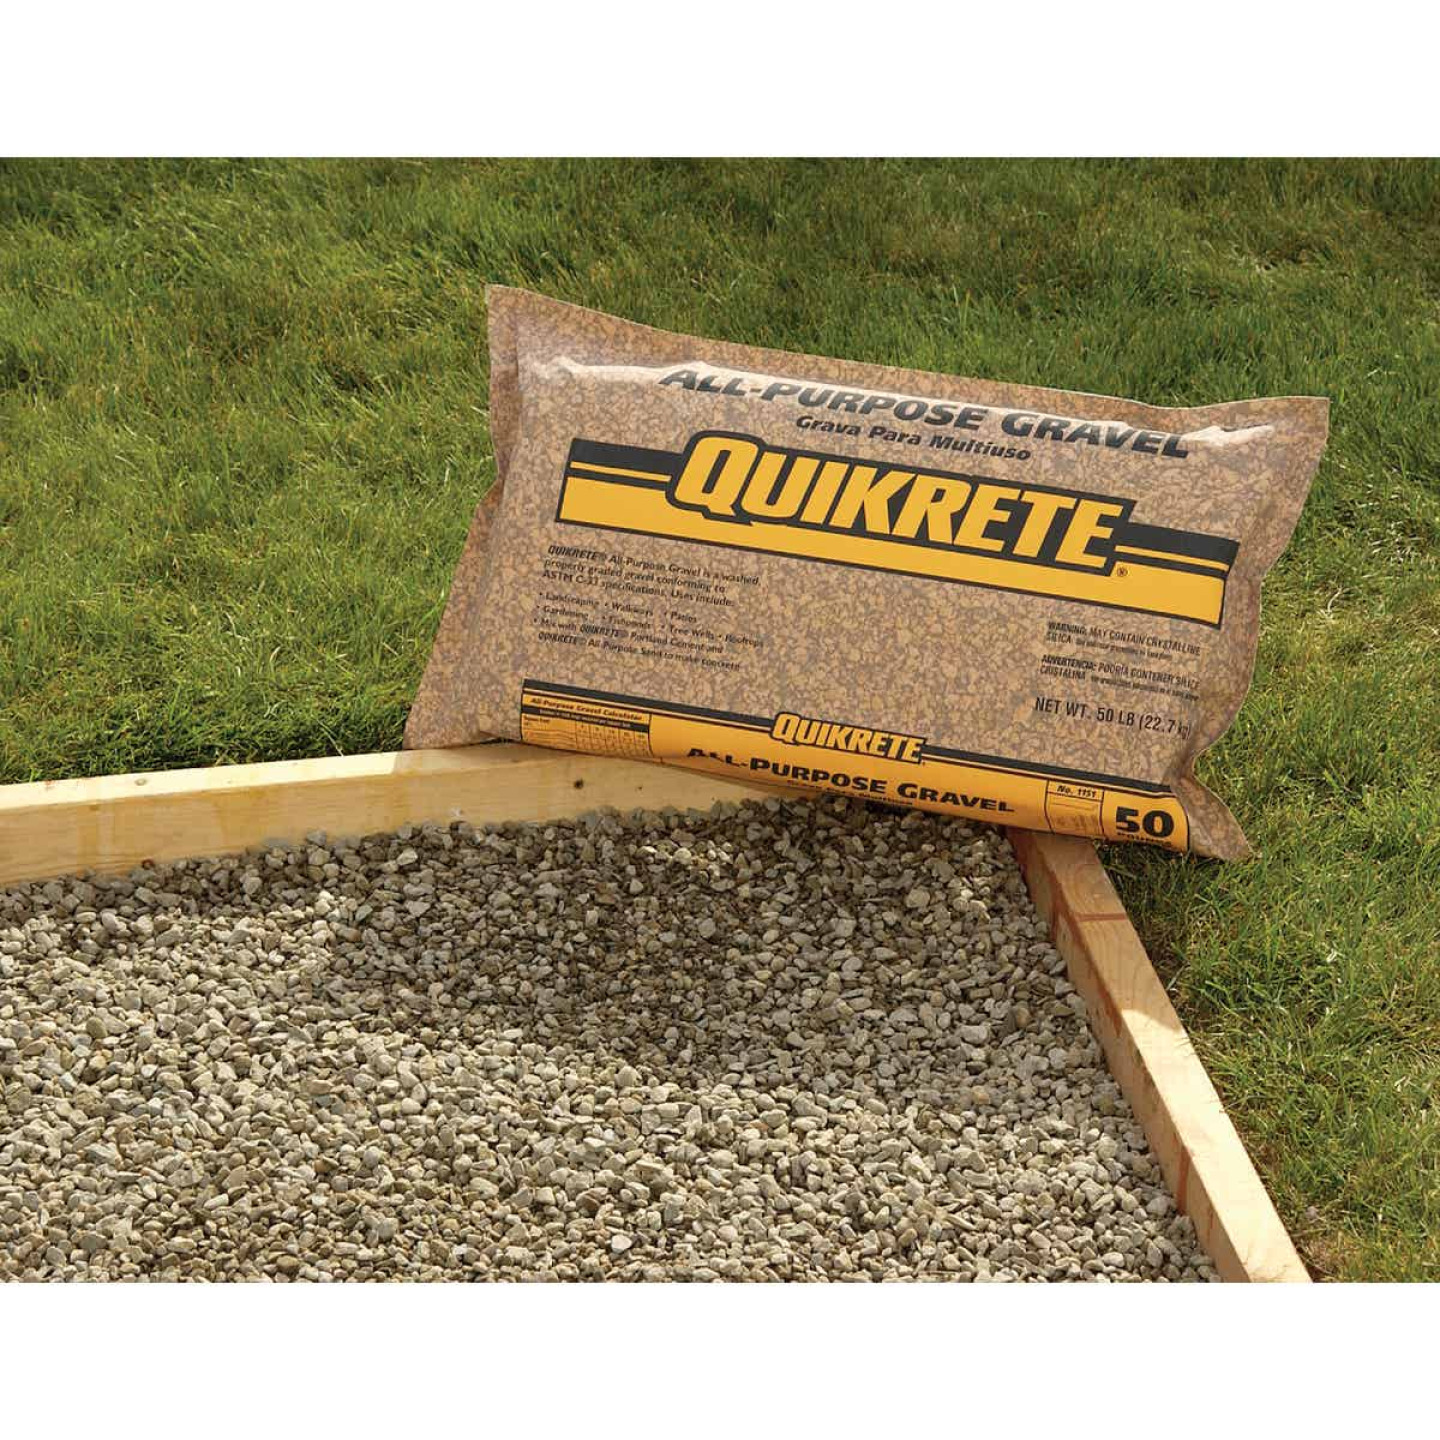 Quikrete 0.5 Cu. Ft. 50 Lb. All-Purpose Gravel Image 2